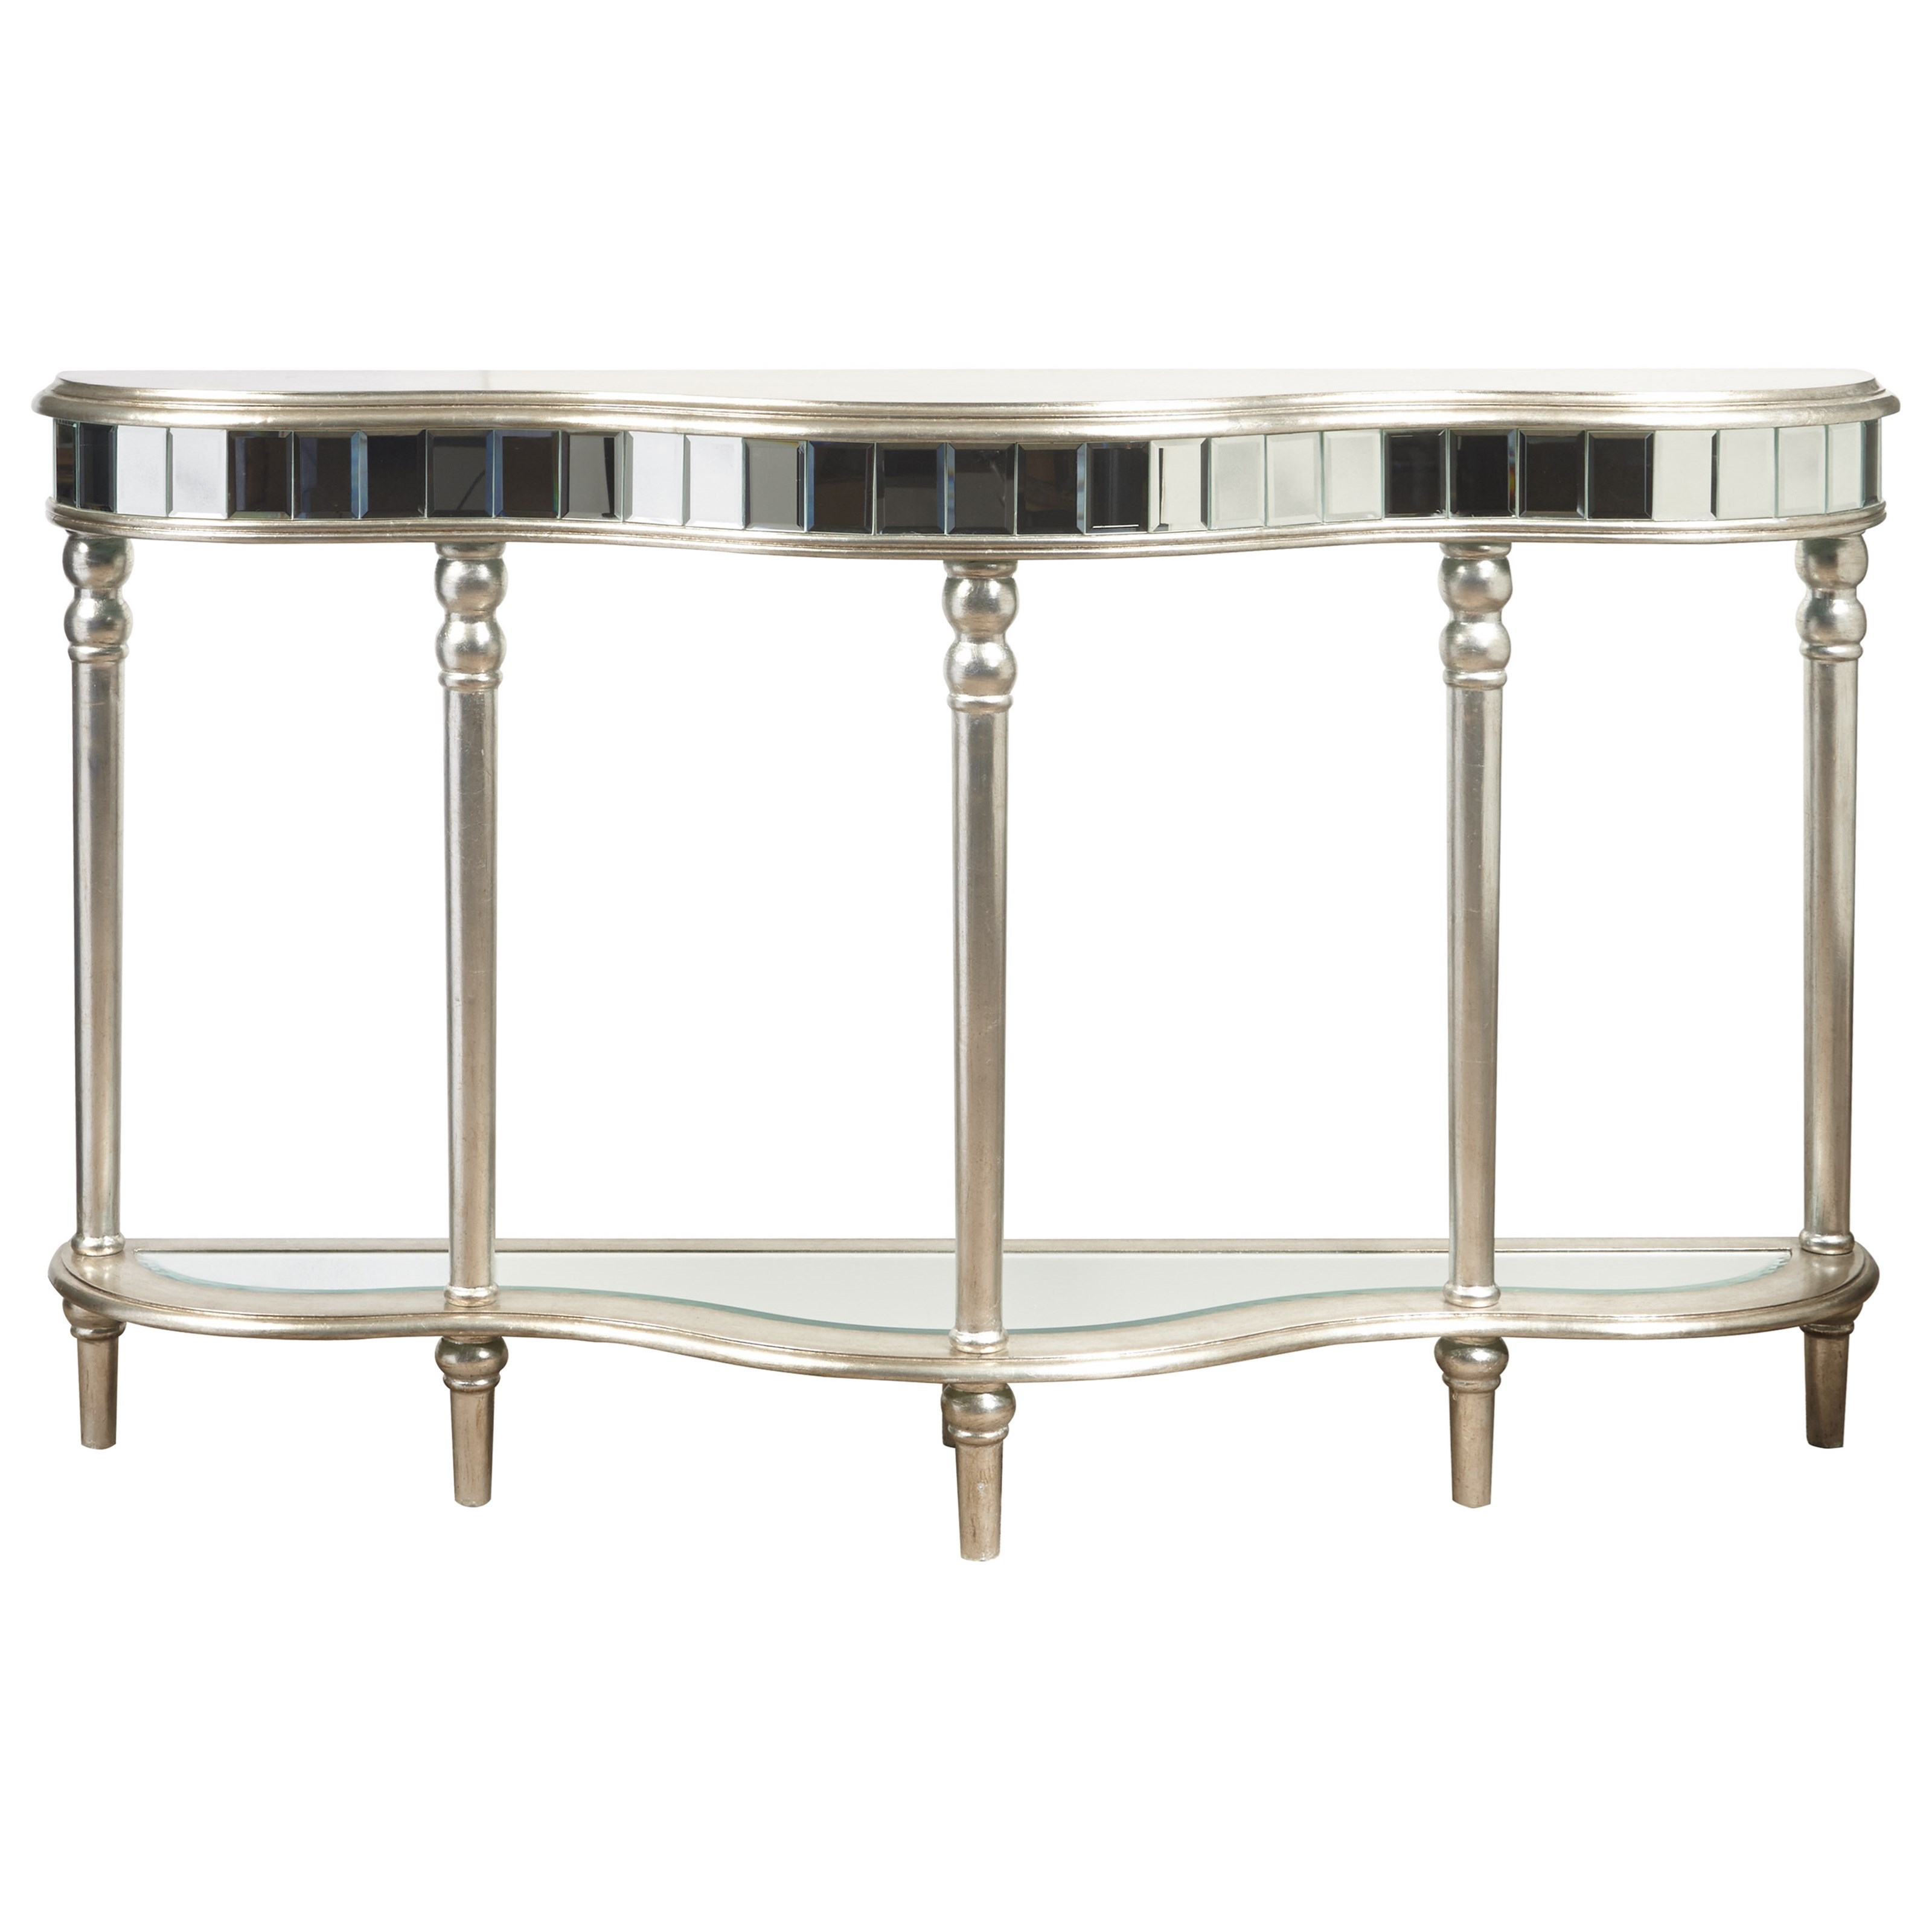 Pulaski Furniture Accents Console Table - Item Number: P017164